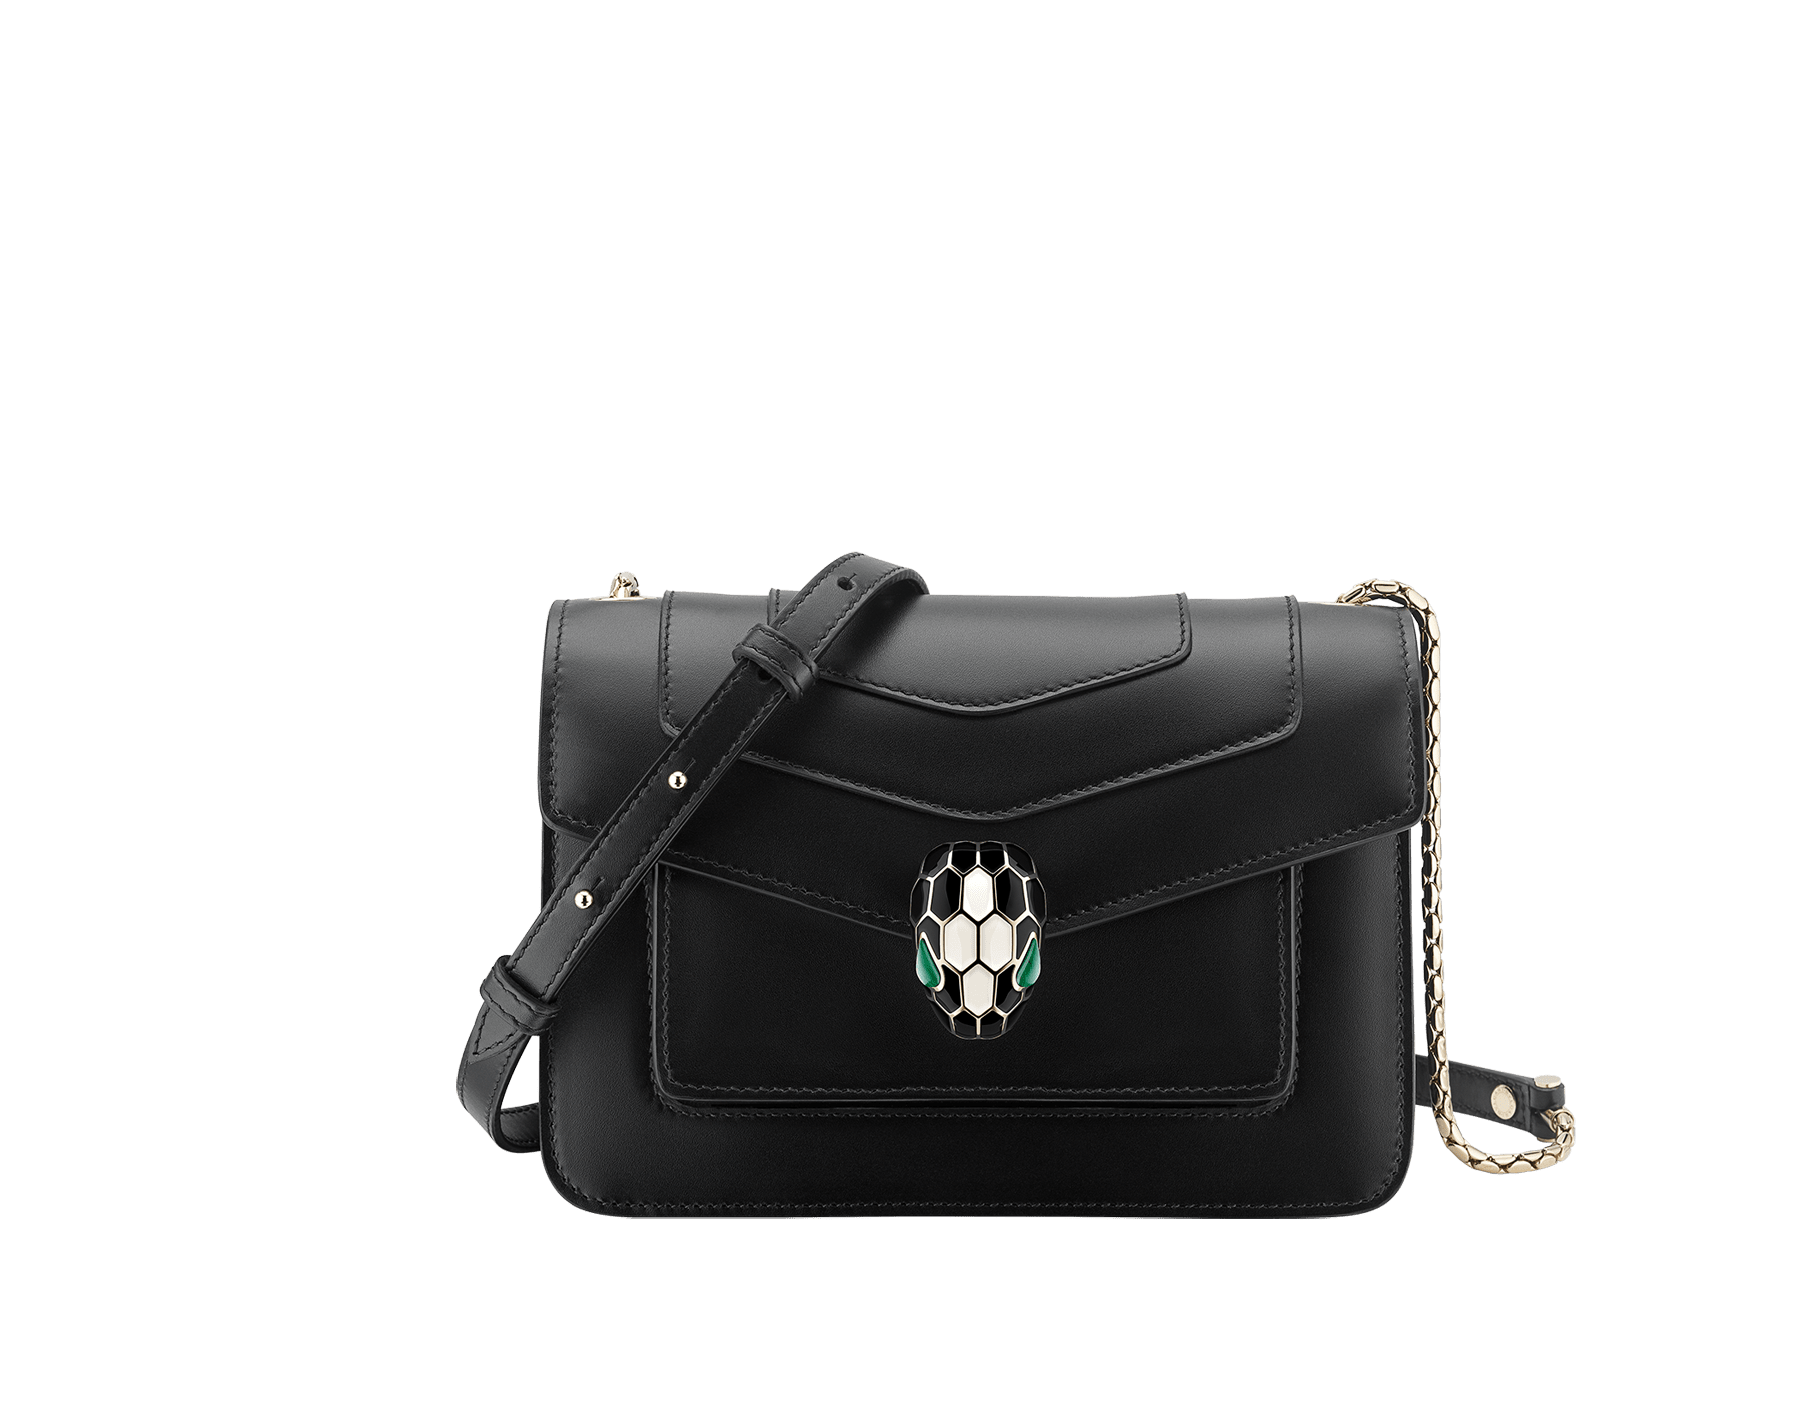 """Serpenti Forever"" crossbody bag in black calf leather. Iconic snakehead closure in light gold plated brass enriched with black and white agate enamel and green malachite eyes. 289677 image 1"